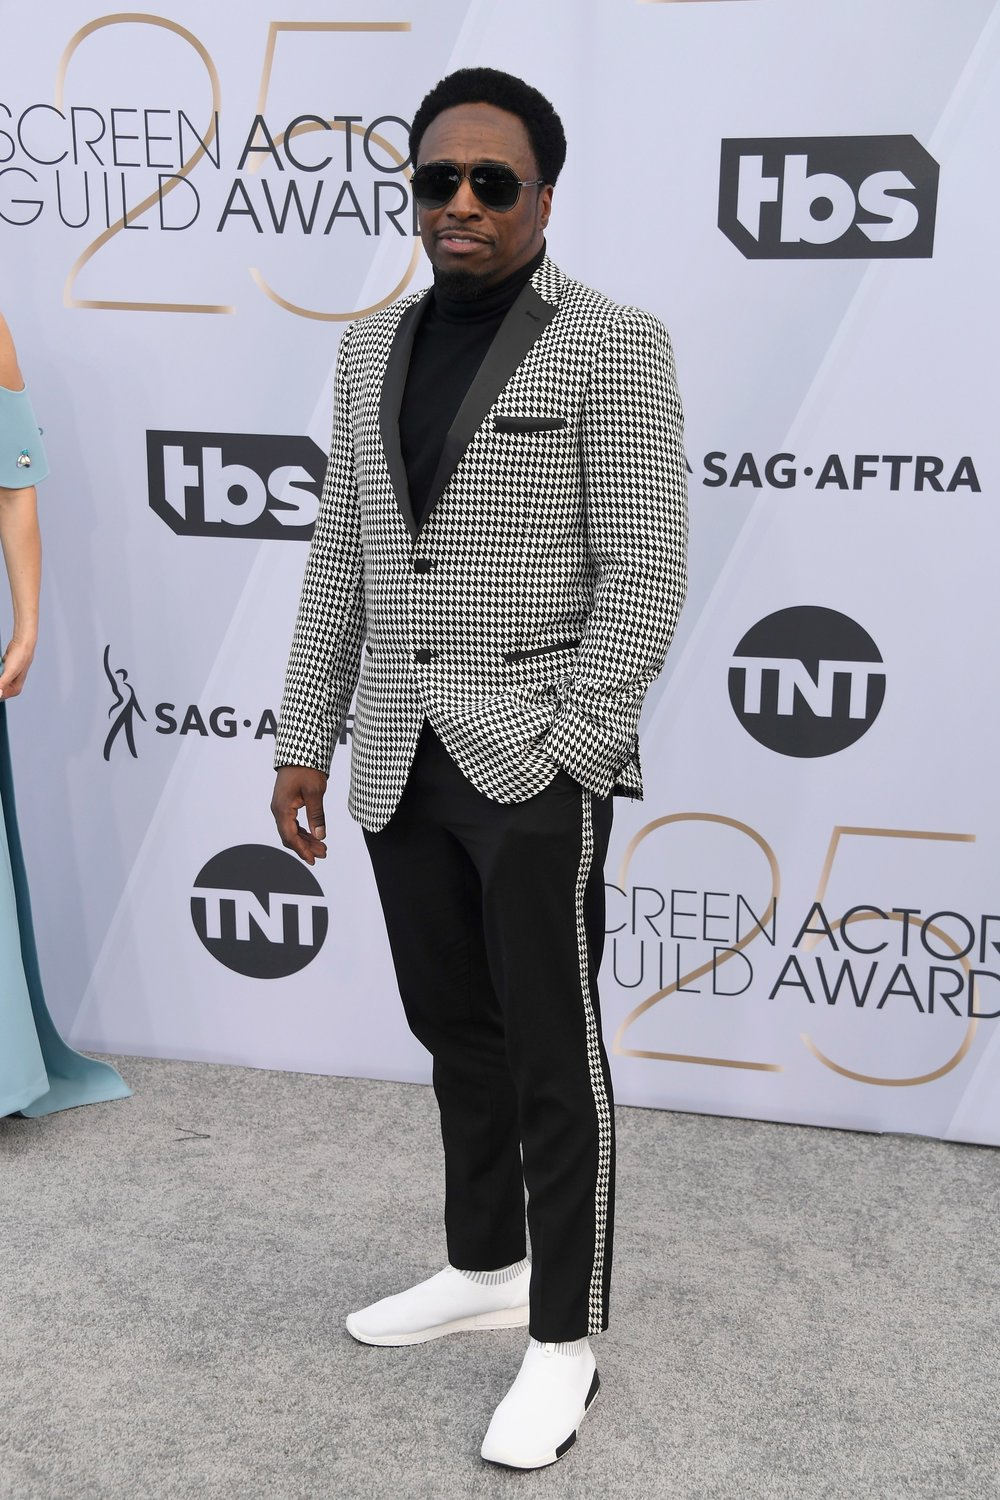 SAG AWARDS 2019 RED CARPET EDDIE GRIFFIN.jpg